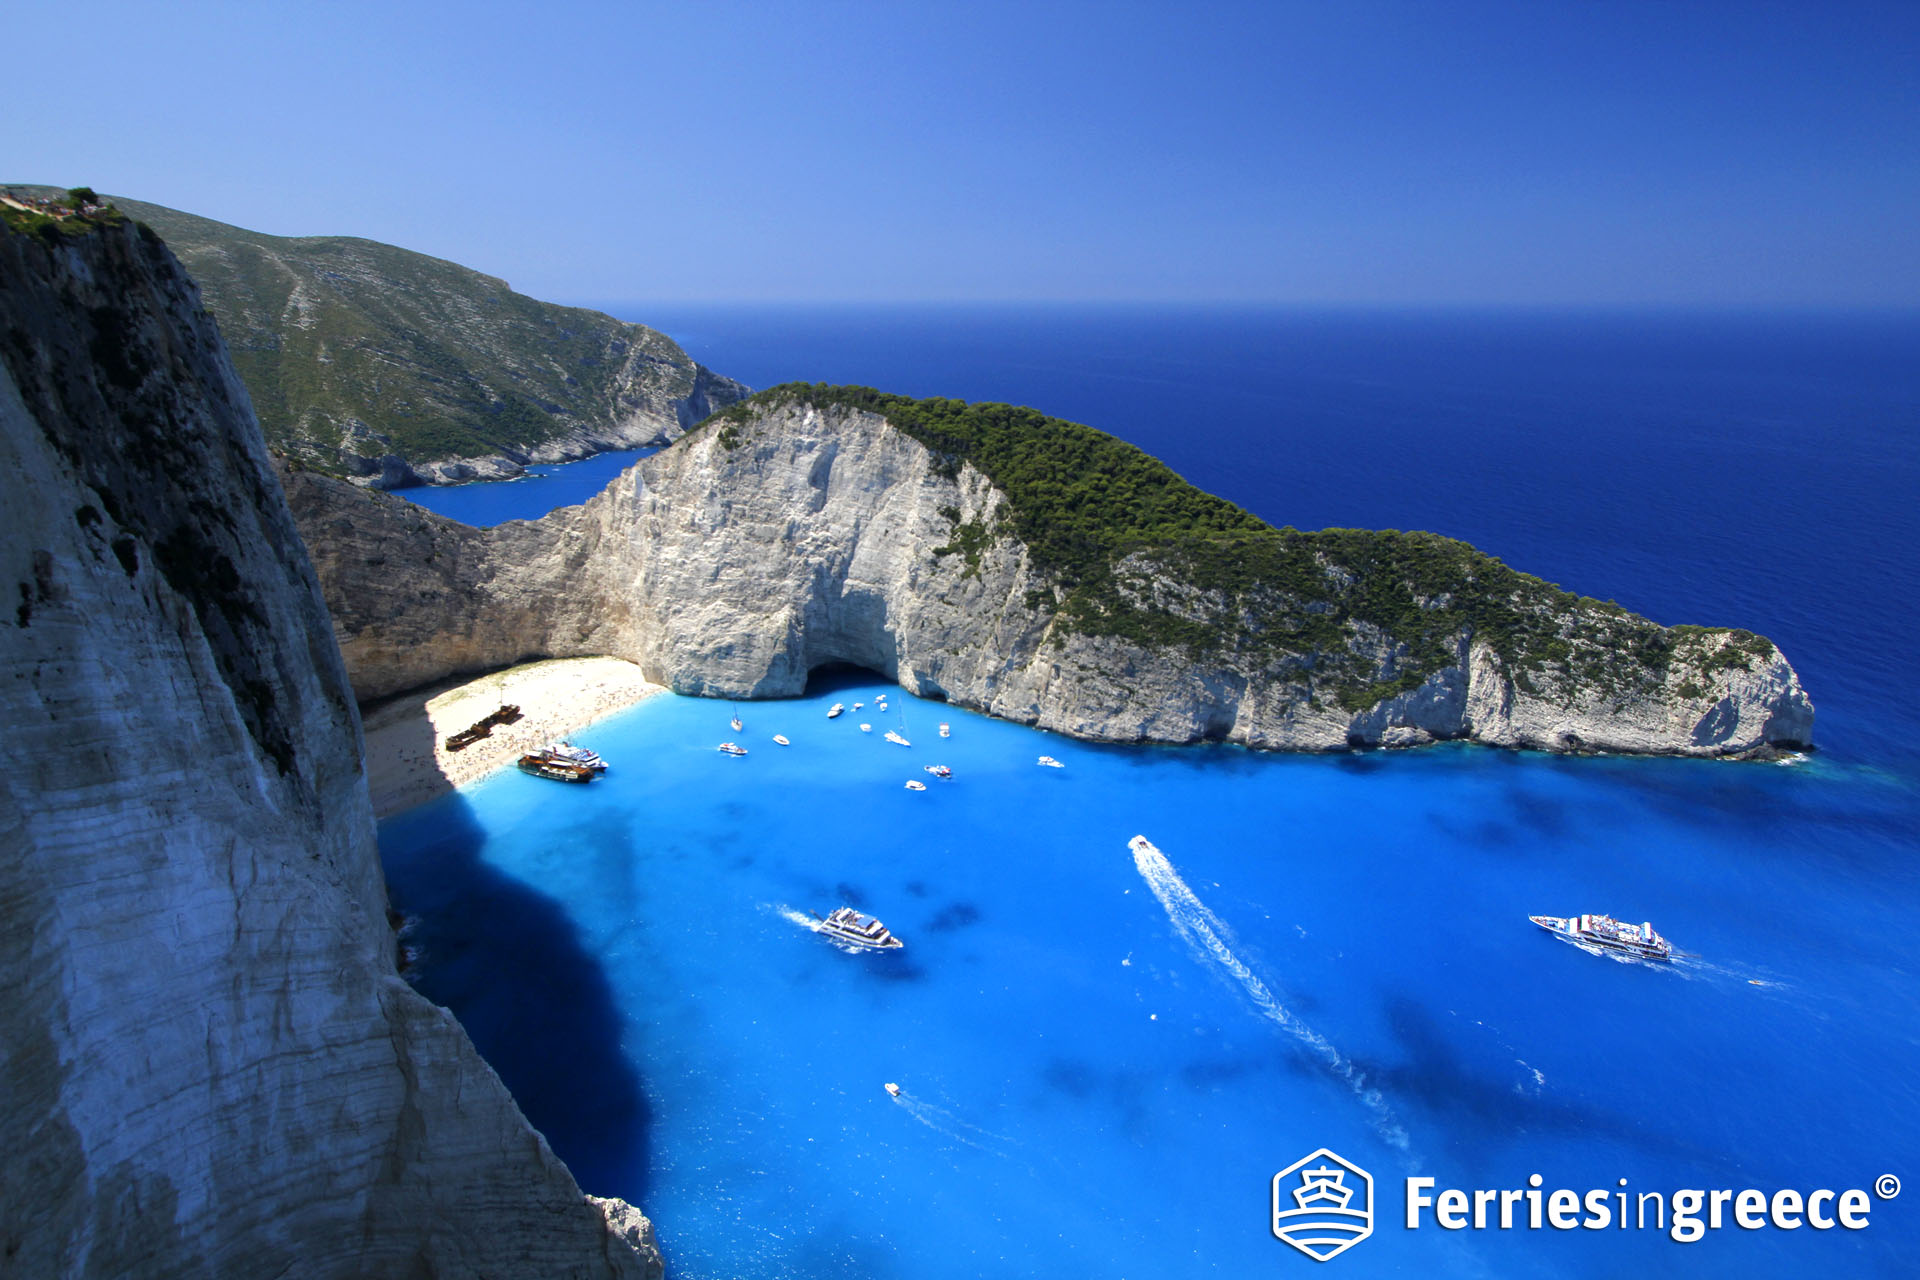 Best beaches in the Greek islands: Navagio or the Shipwreck beach